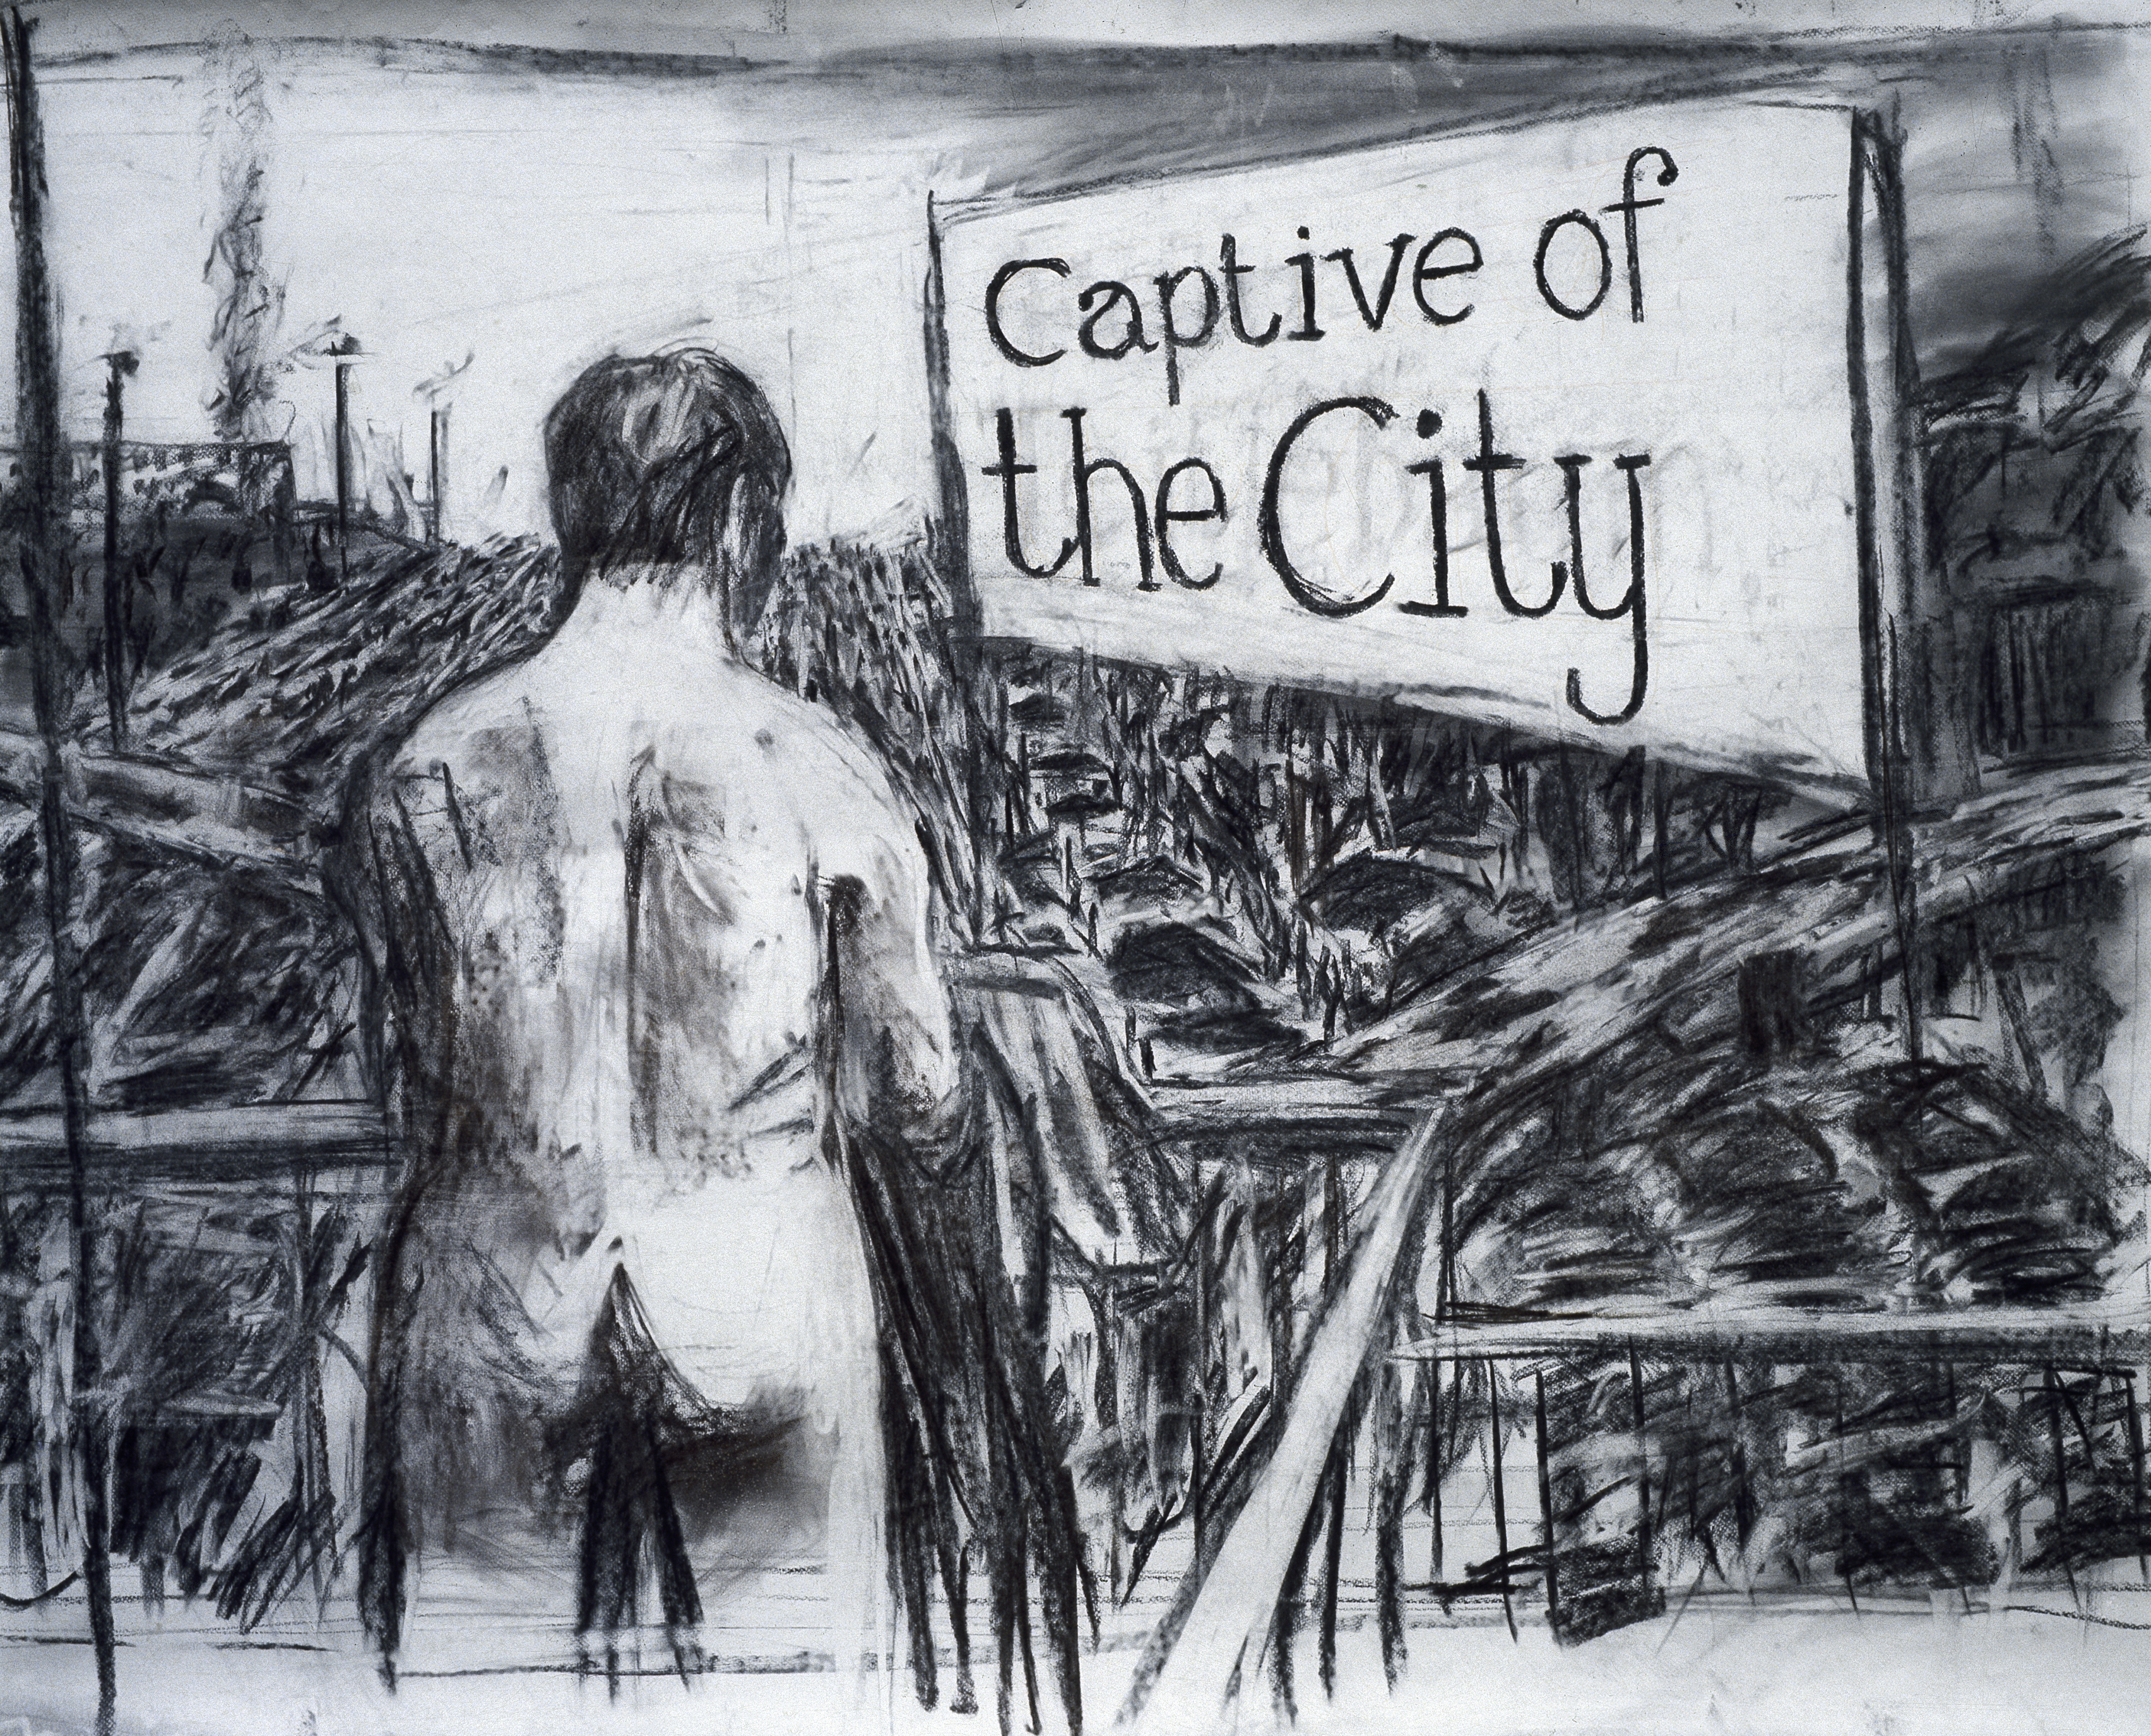 Drawing for the film Johannesburg, 2nd Greatest City after Paris (Captive of the City)